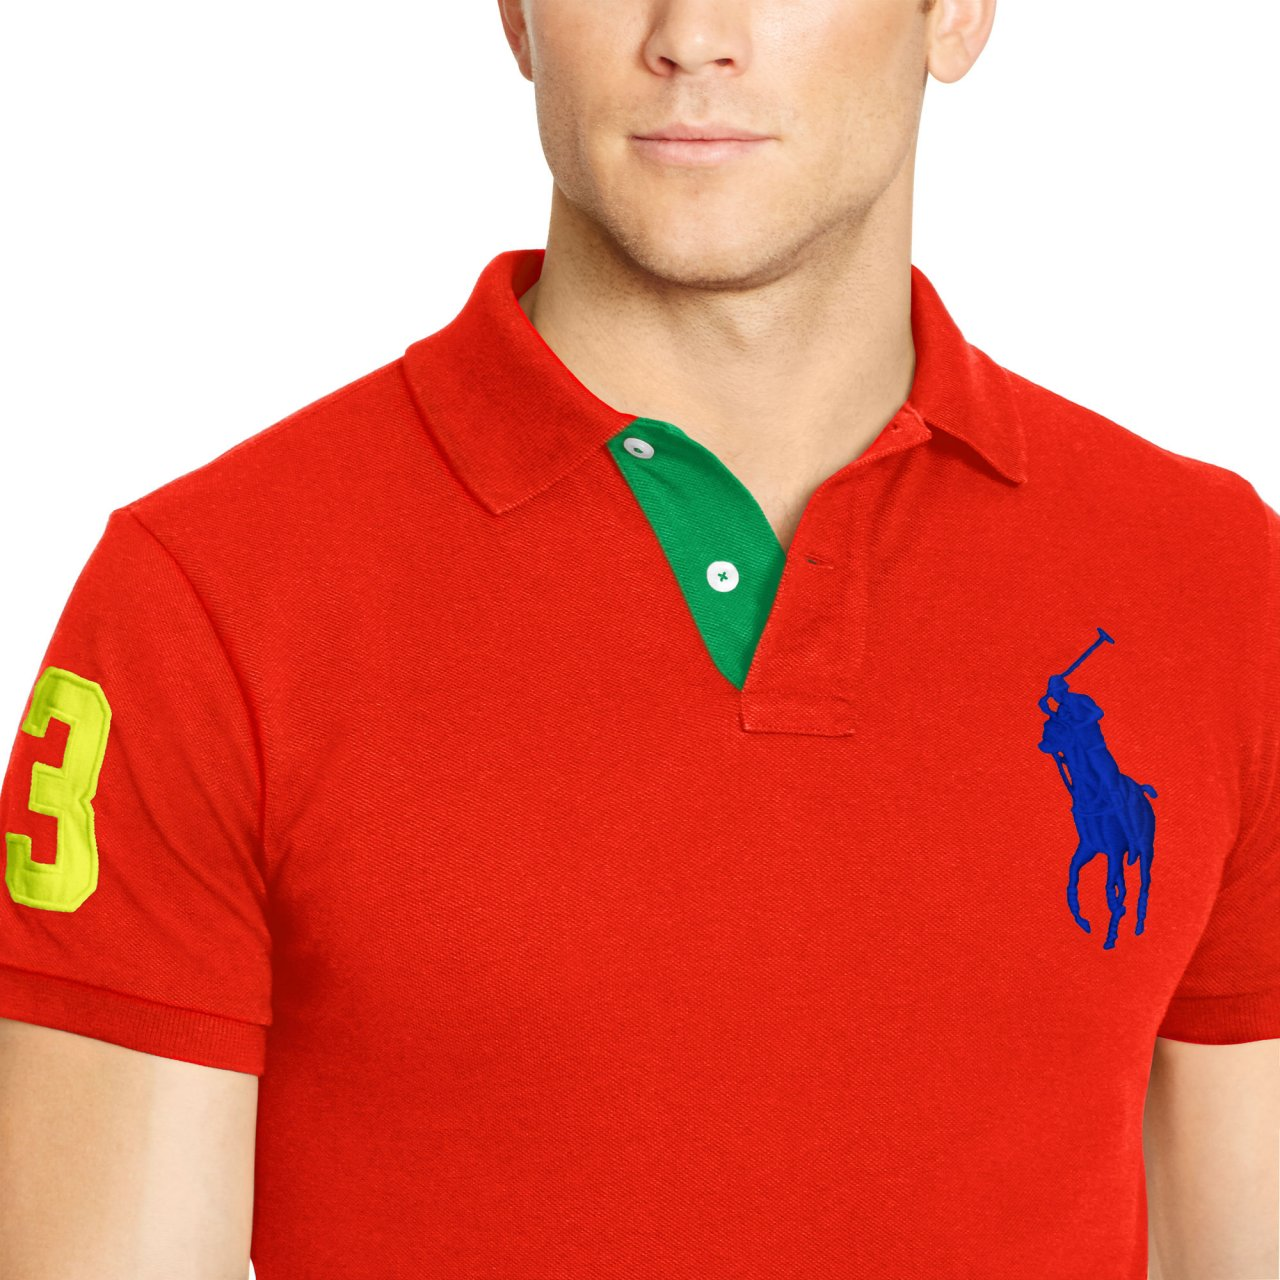 b704e8e690ba5 Polo Ralph Lauren NEW Custom Fit Big Pony Polo Cotton Short Sleeve Shirt   98